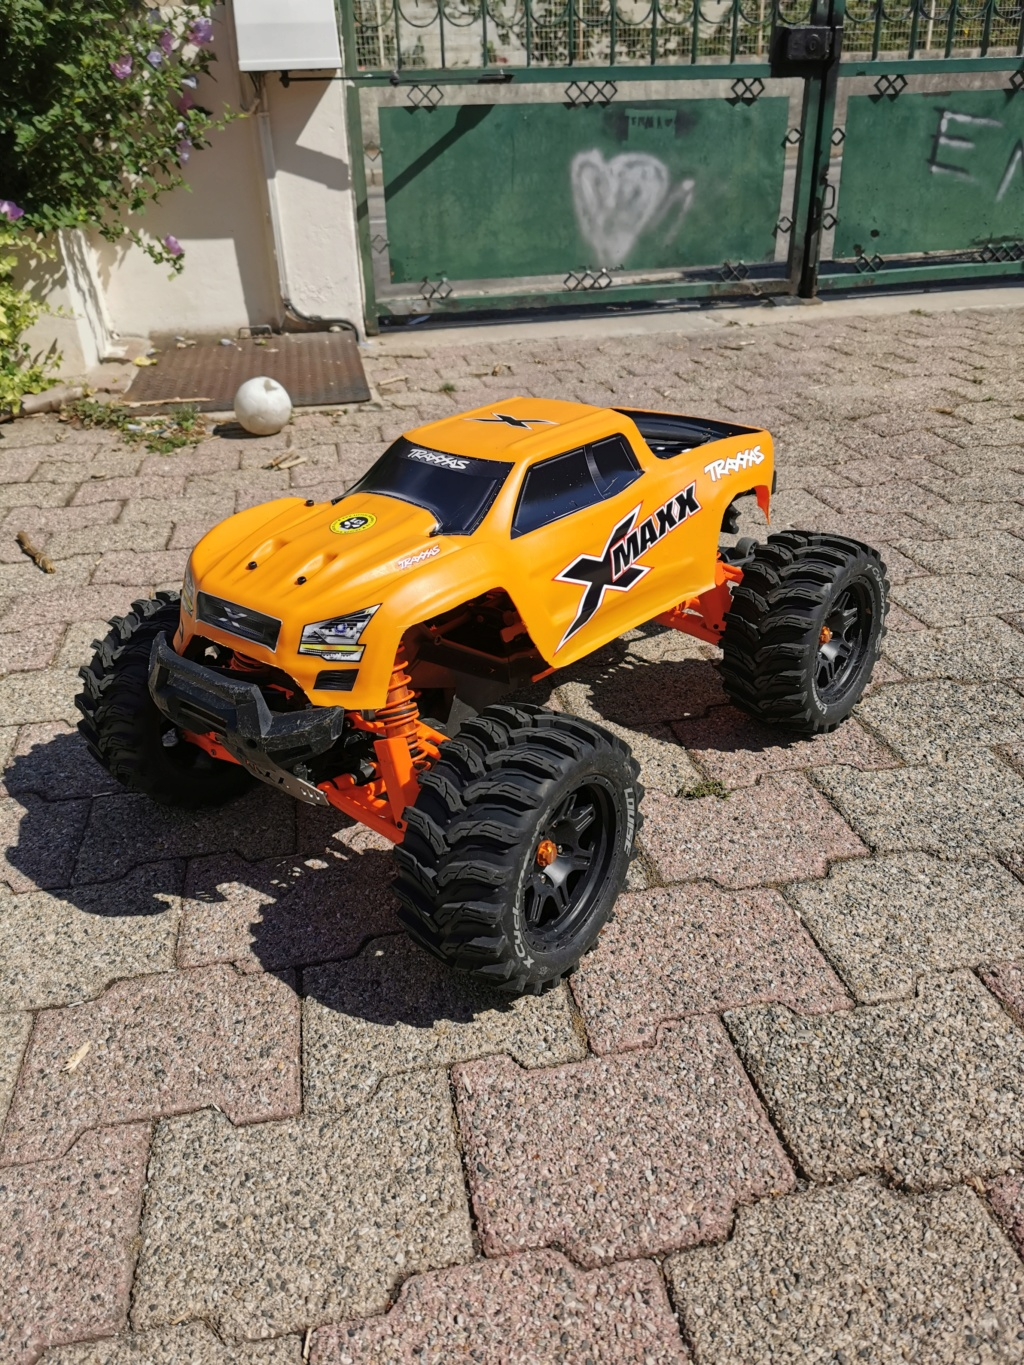 Xmaxx orange mécanique  - Page 3 Img_2033